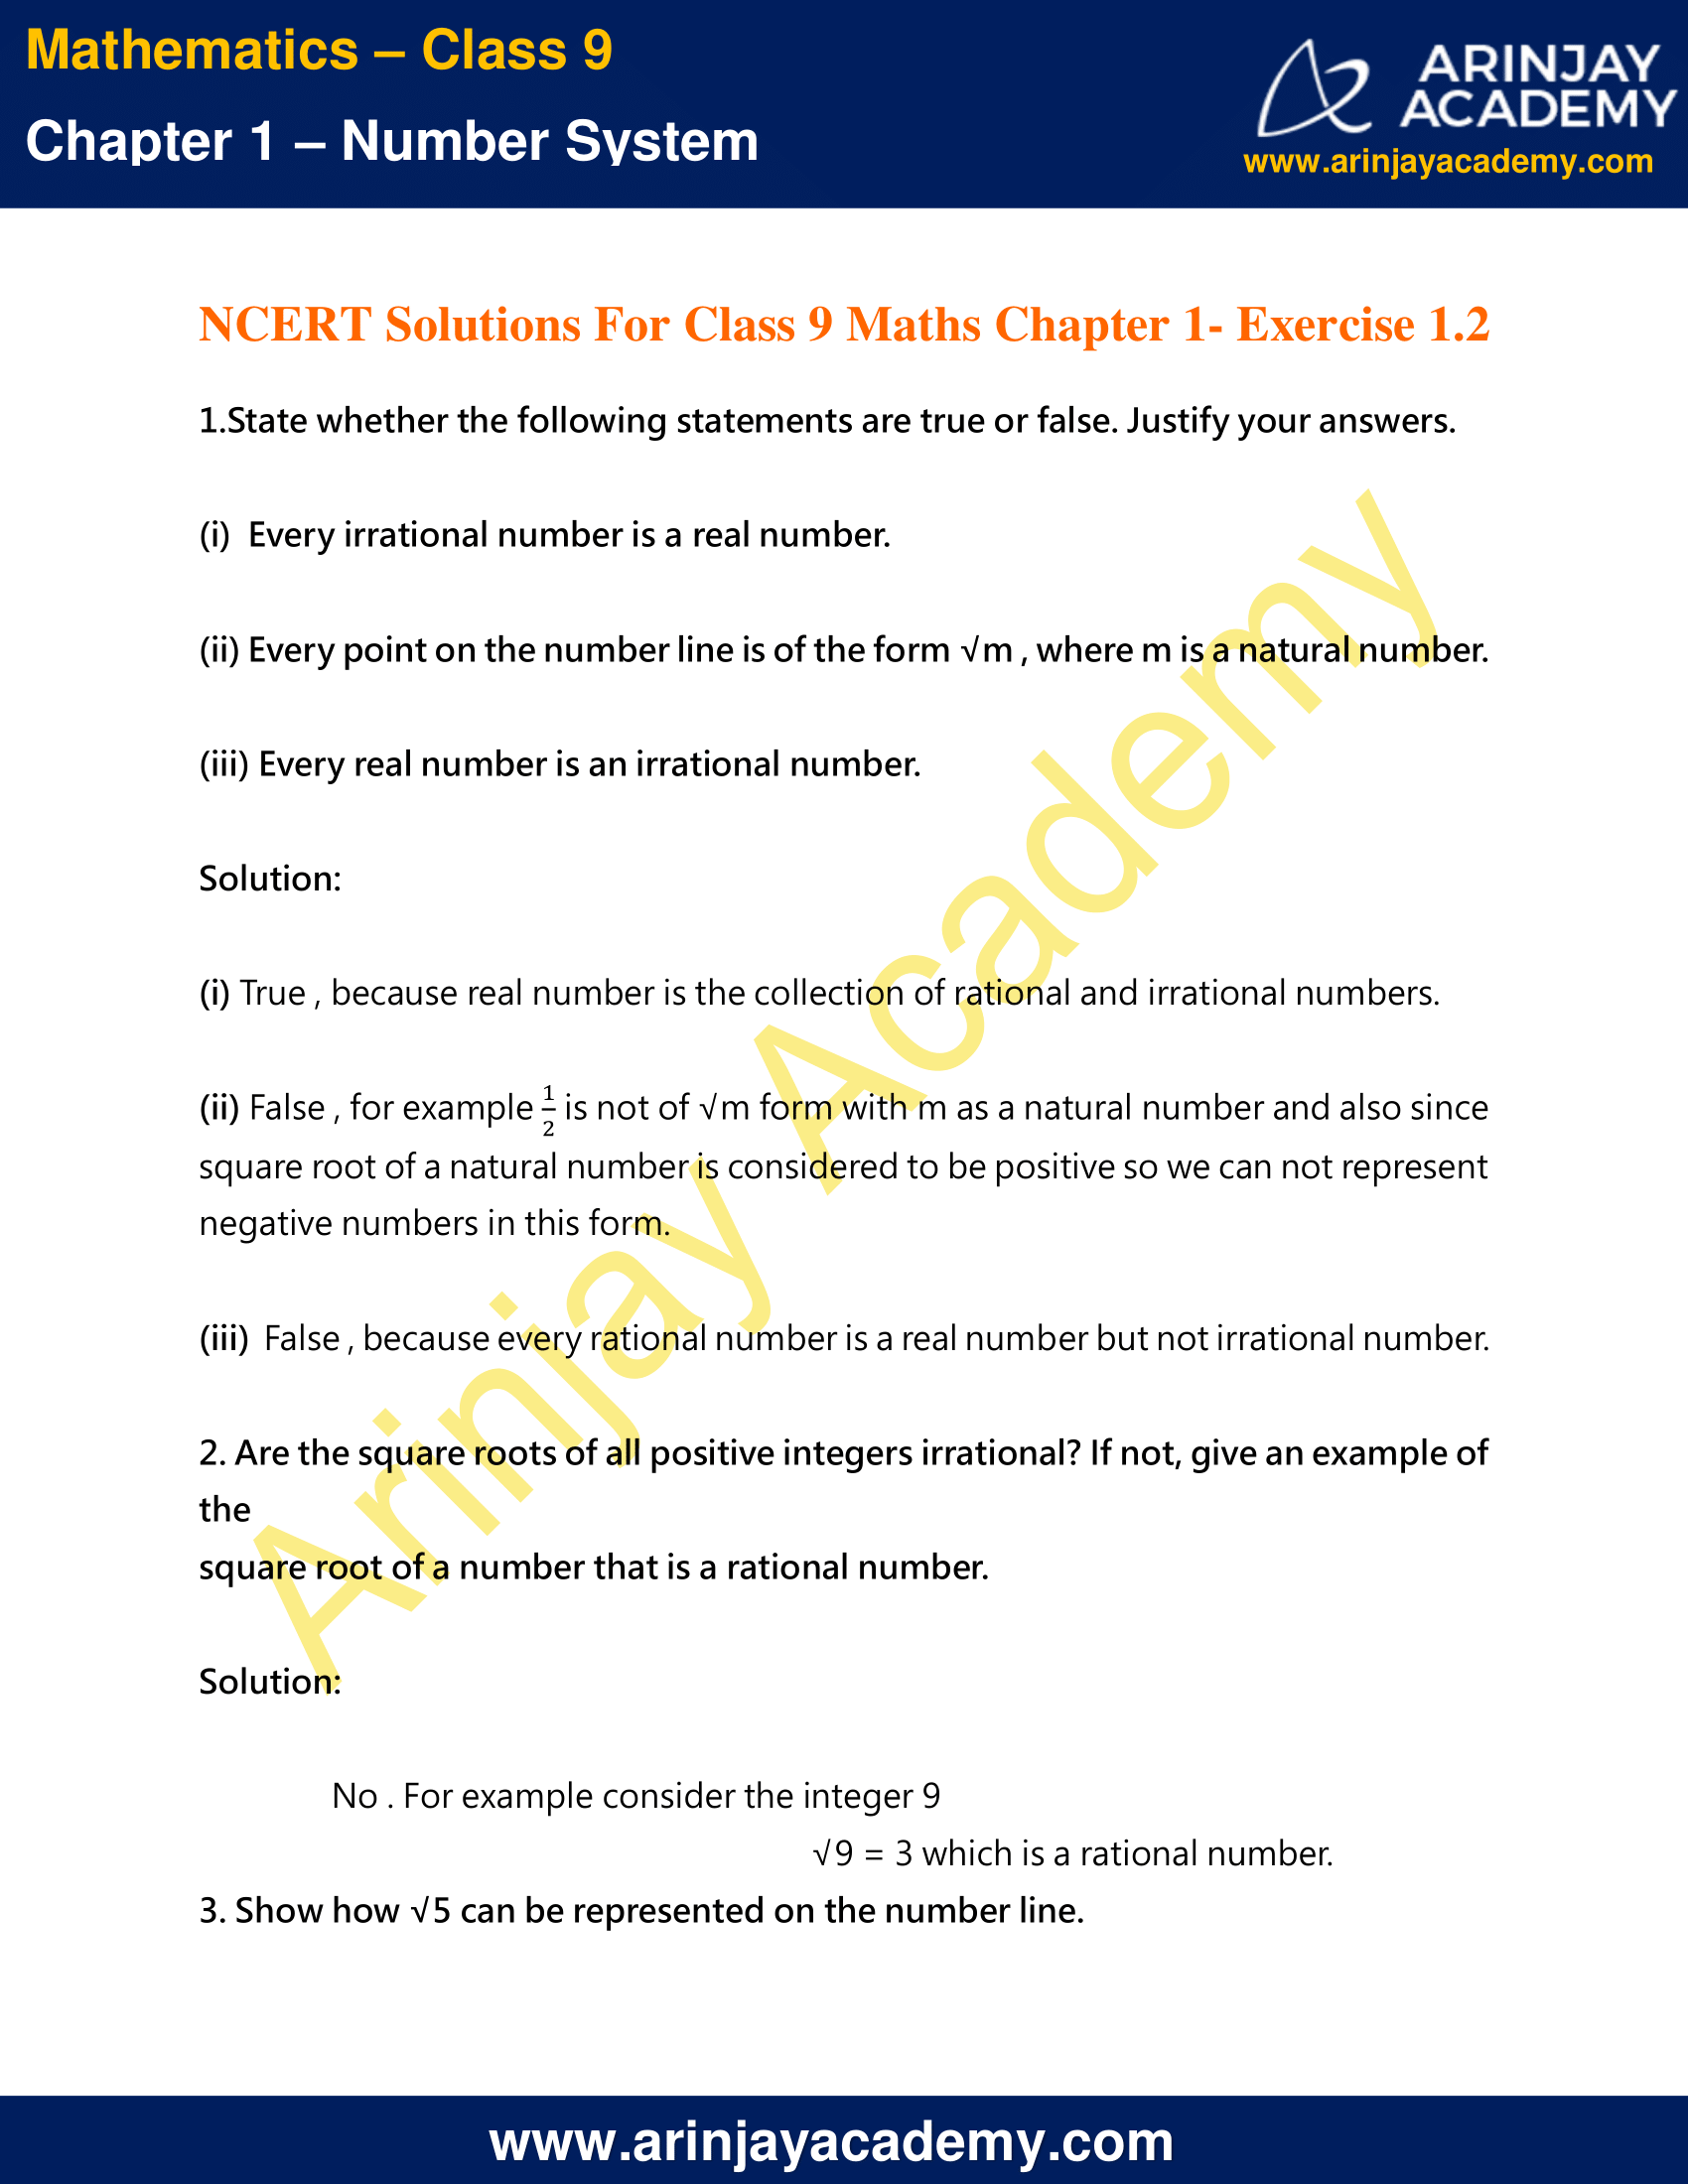 NCERT Solutions For Class 9 Maths Chapter 1 Exercise 1.2 image 1